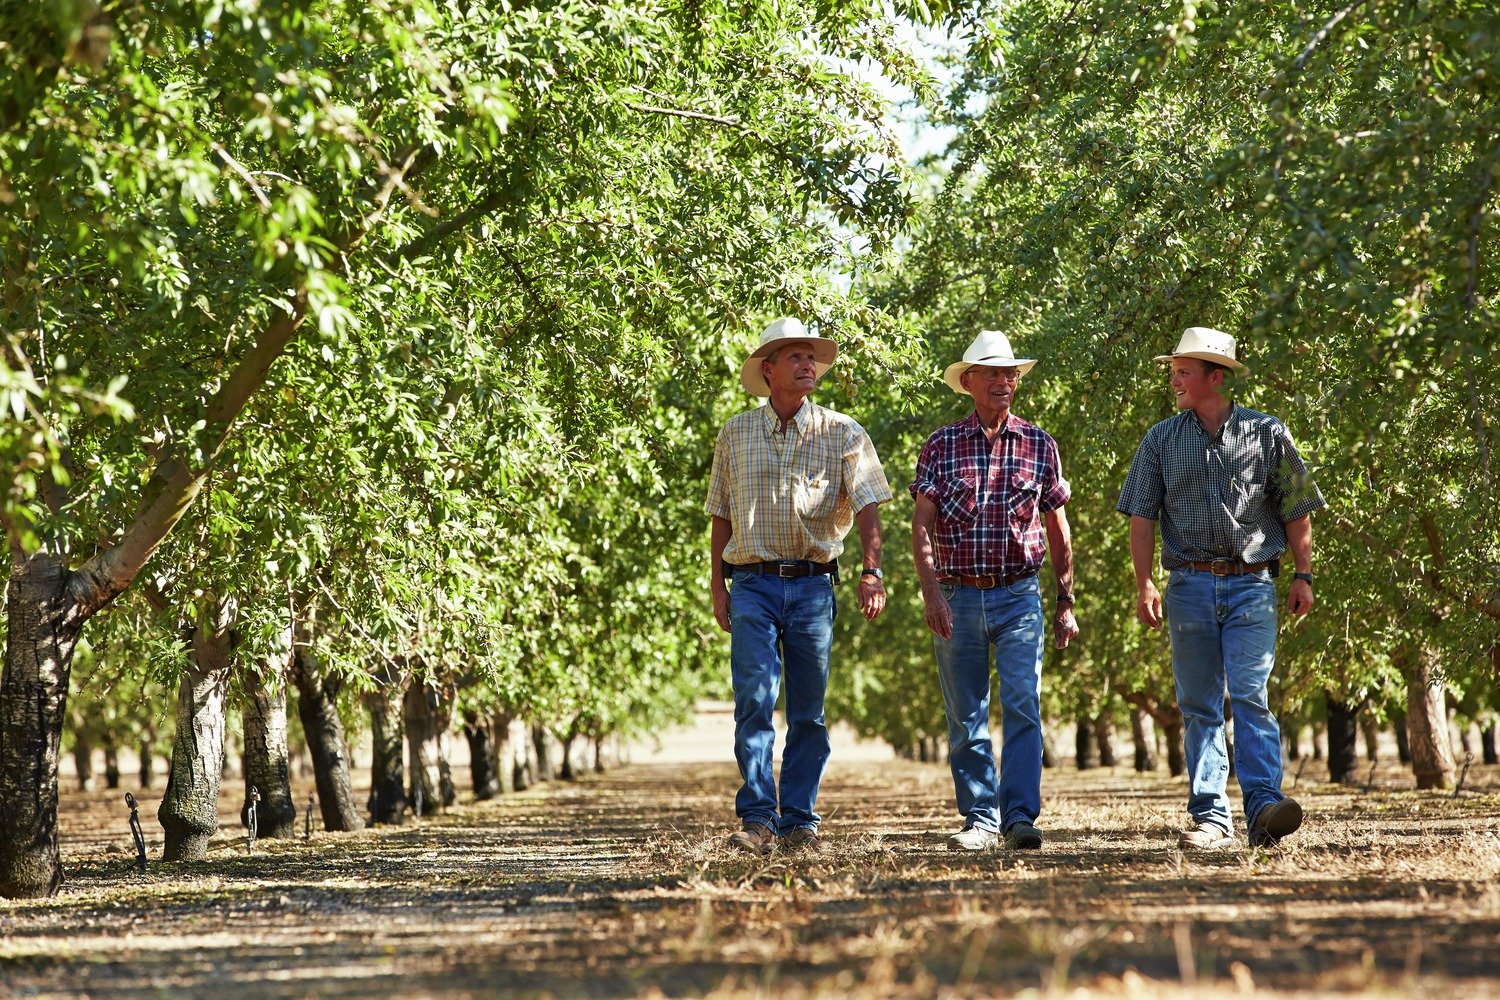 Three generations of California Almond farmers walking through an almond orchard.